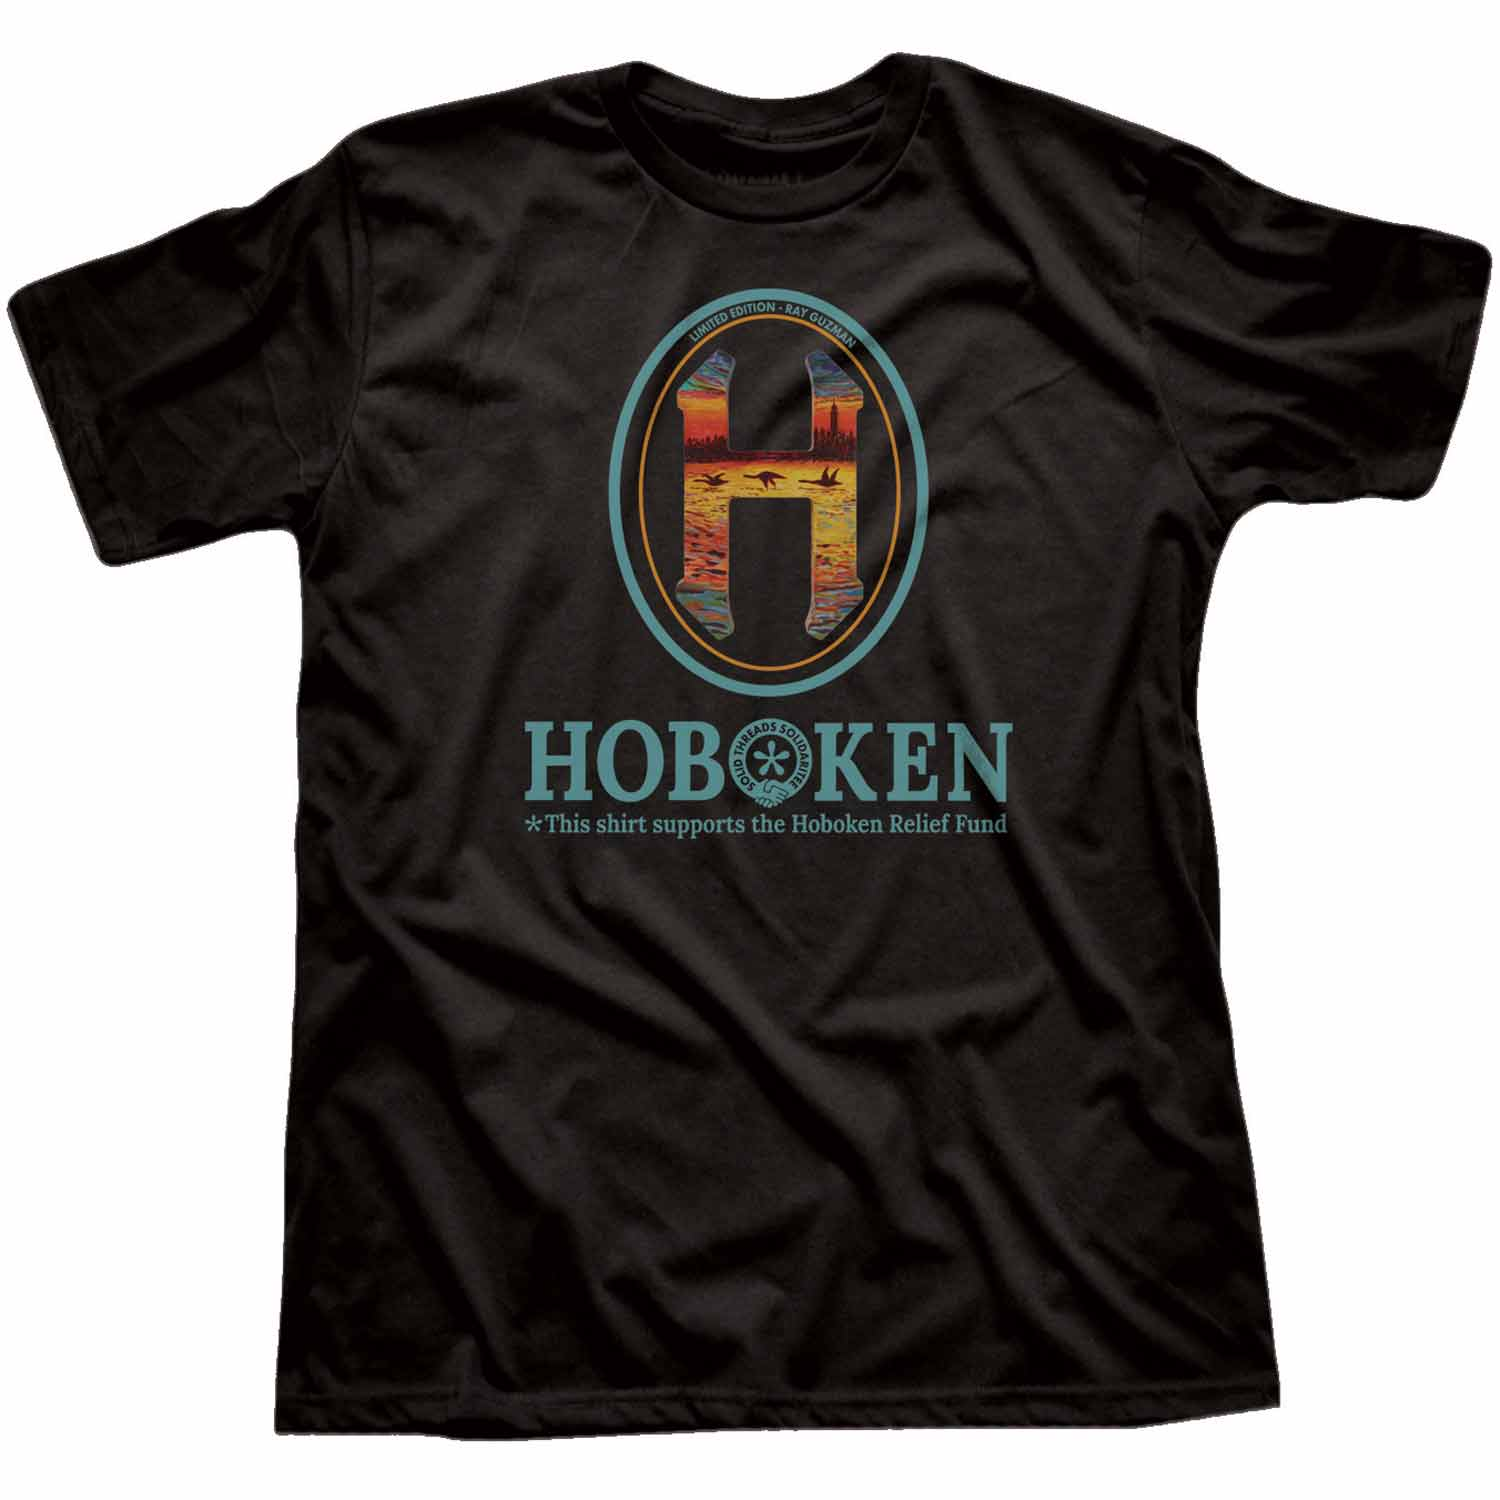 "Men's Hoboken ""H"" Relief Fund Limited Edition scoopneck tee-shirt with cool, retro Ray Guzman graphic 